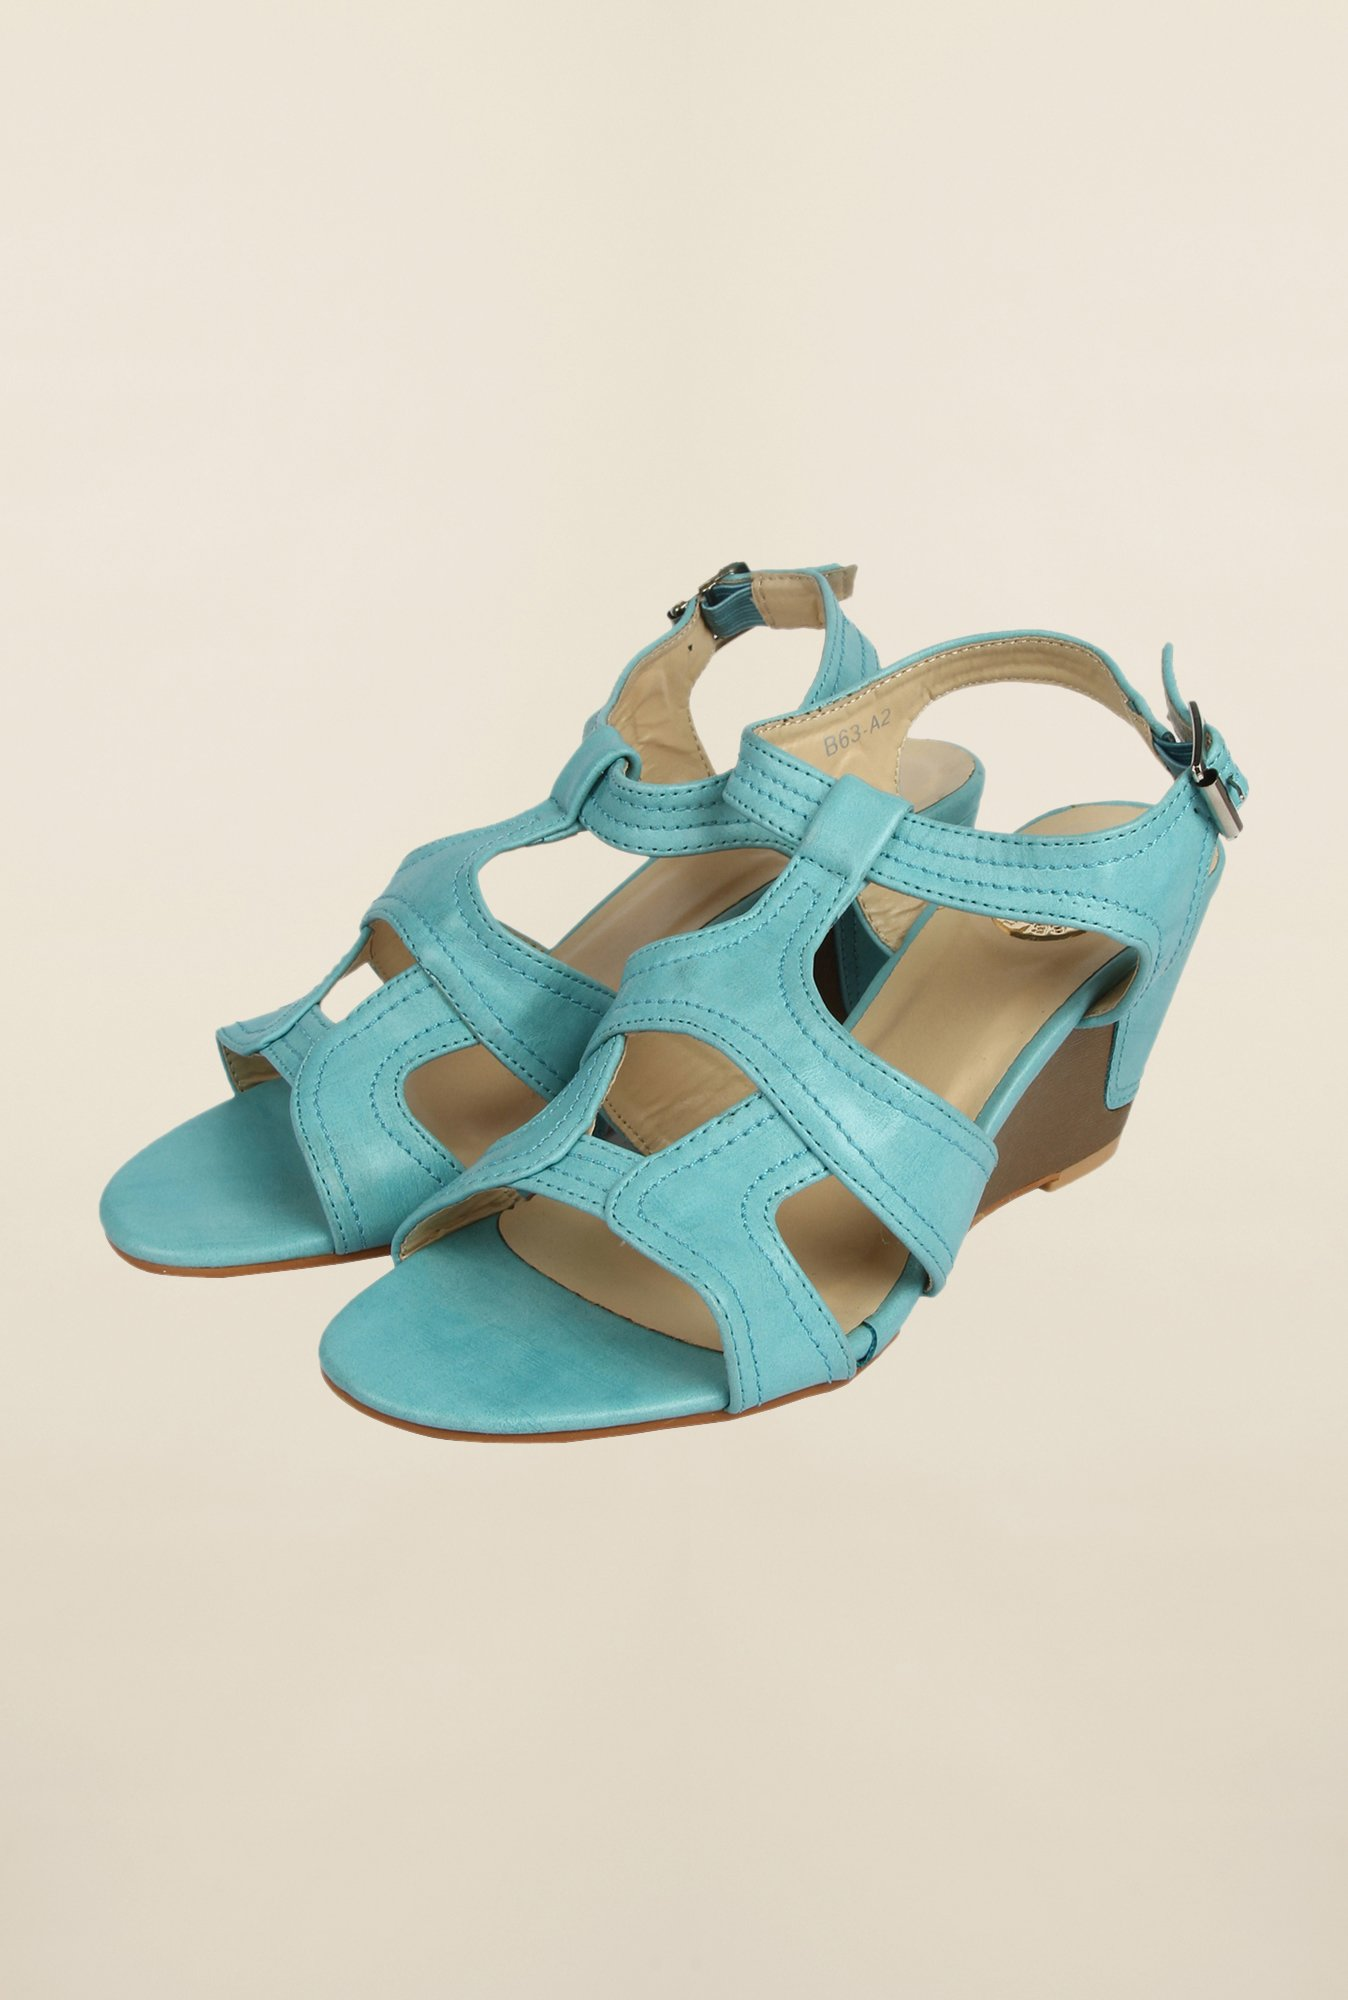 Cobblerz Aqua Wedge Sandals